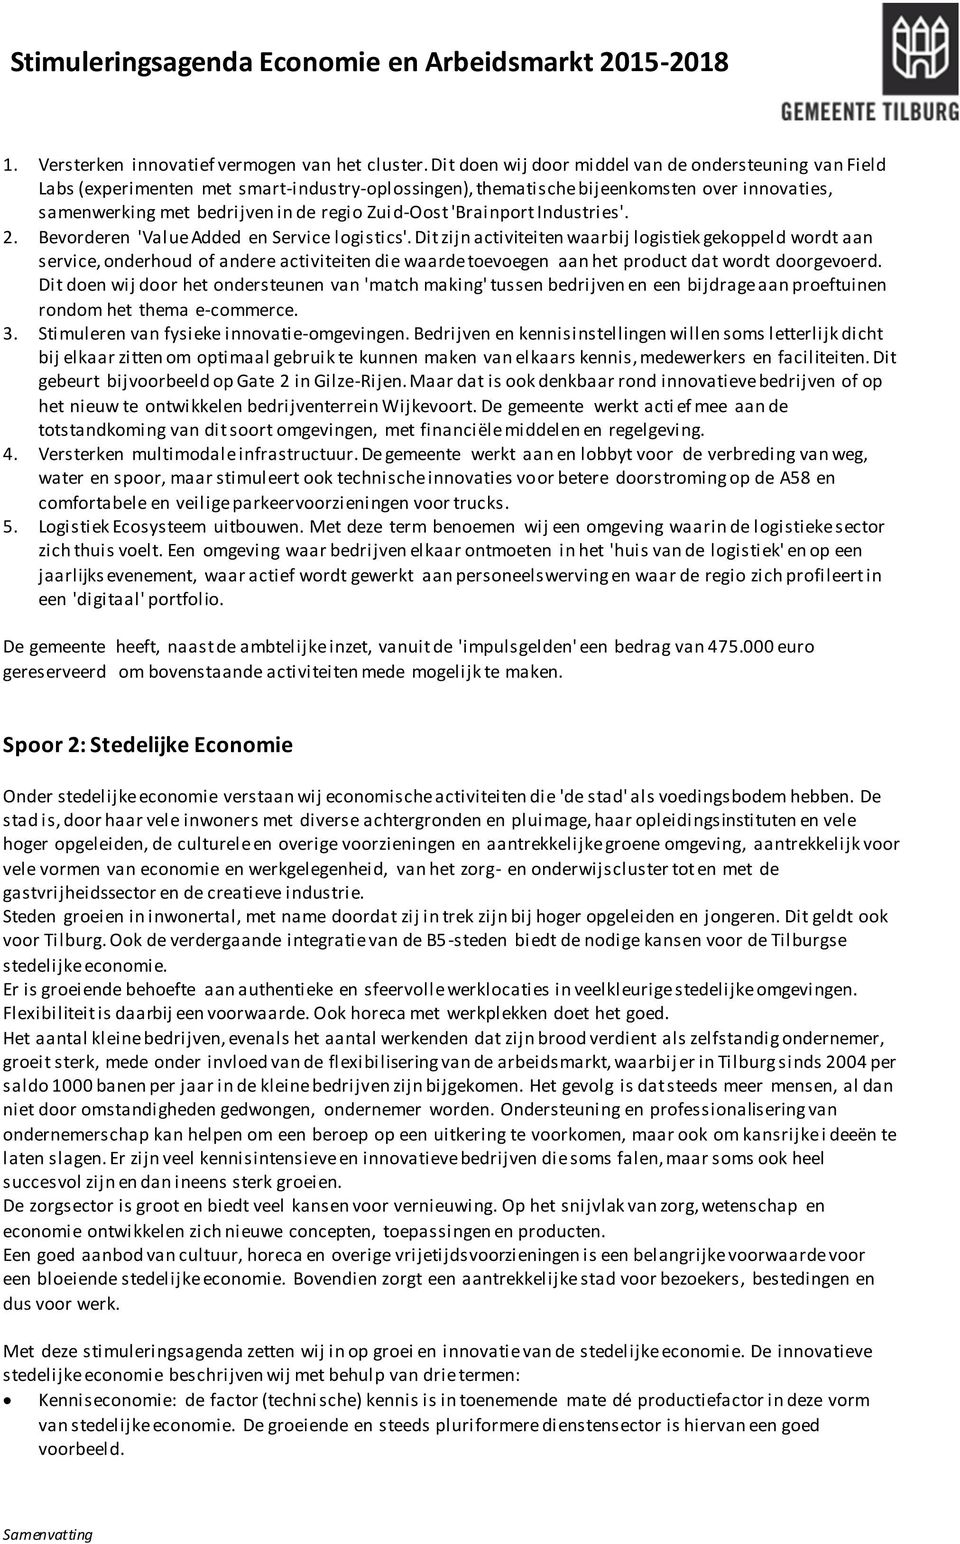 d-oost 'Brainport Industries'. 2. Bevorderen 'Value Added en Service logistics'.